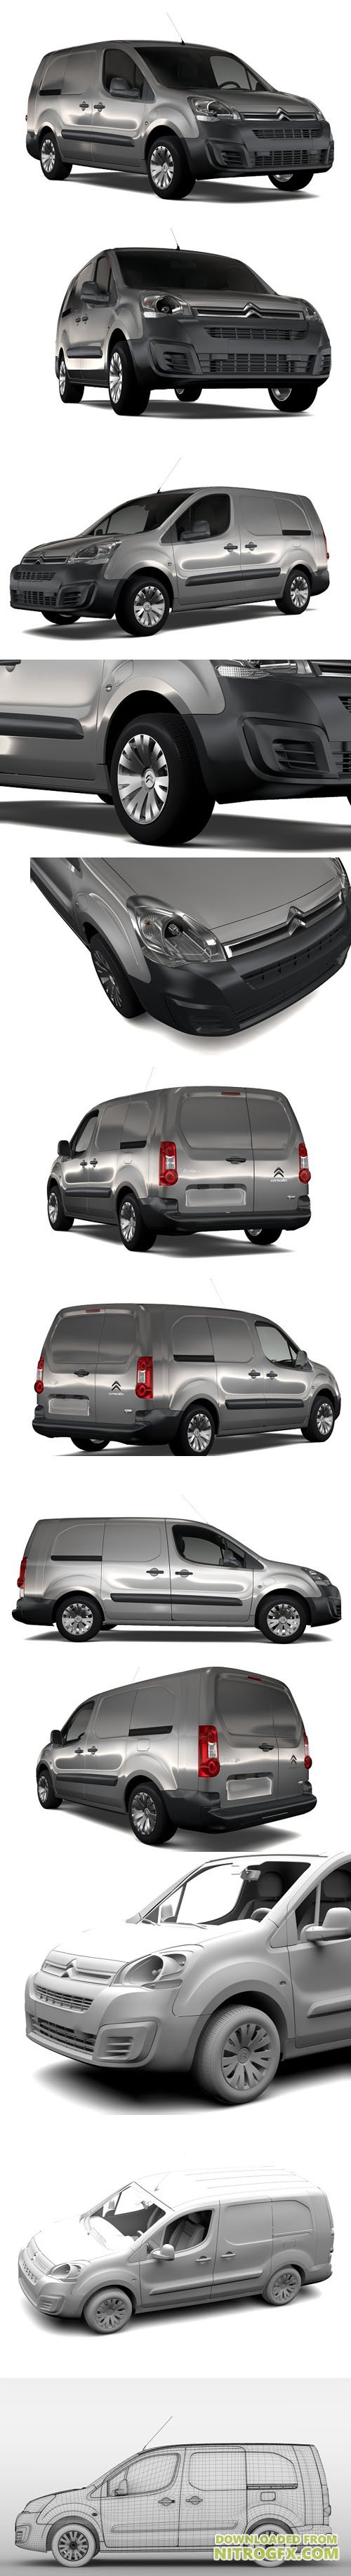 CreativeMarket - Citroen Berlingo Van L2 Full 1844369